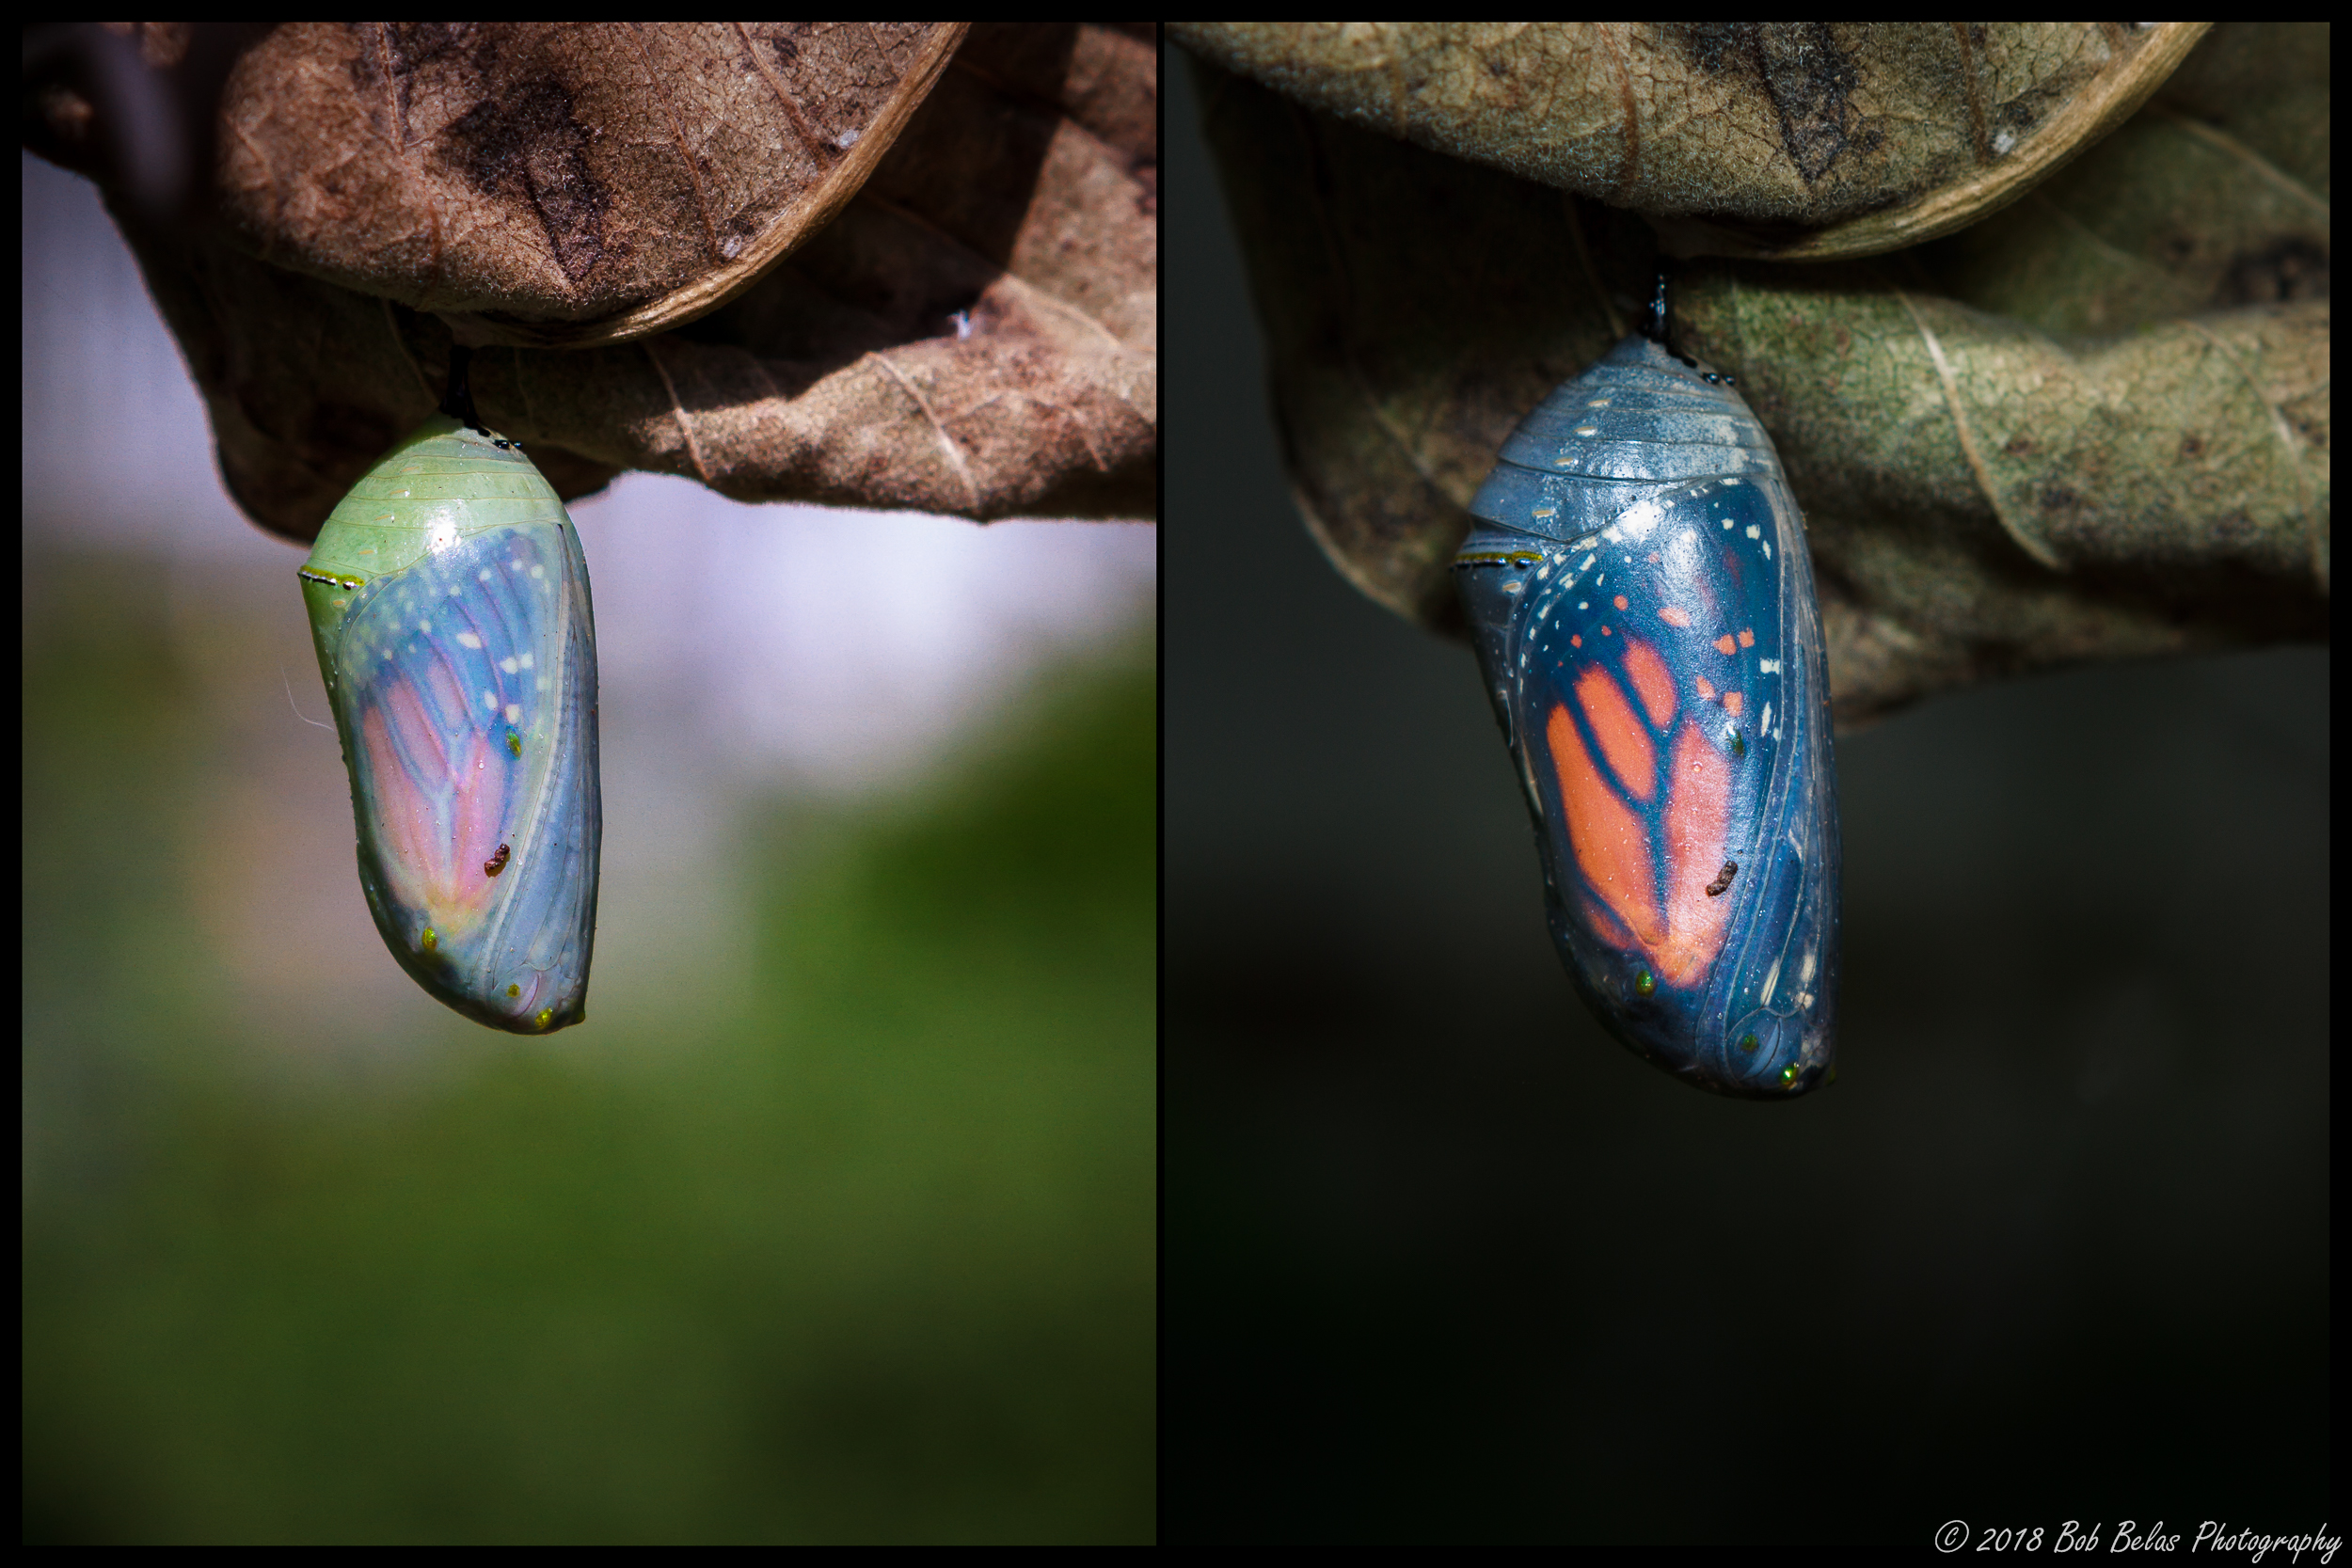 Chrysalis Duo, color